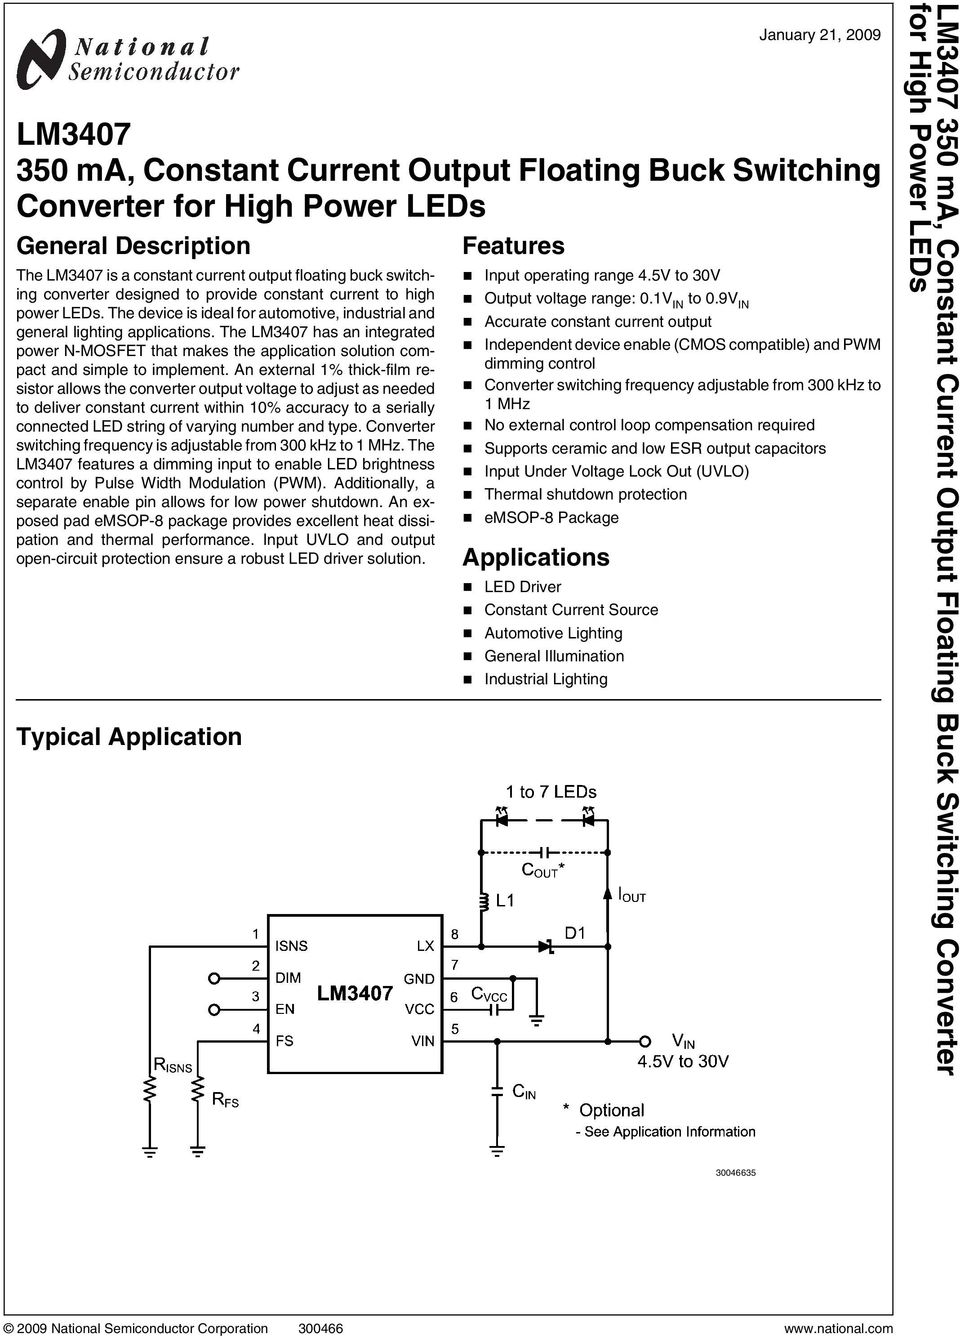 Lm Ma Constant Current Output Floating Buck Switching Converter Adjustable High Power Led Driver The Lm3407 Has An Integrated N Mosfet That Makes Application Solution Compact And